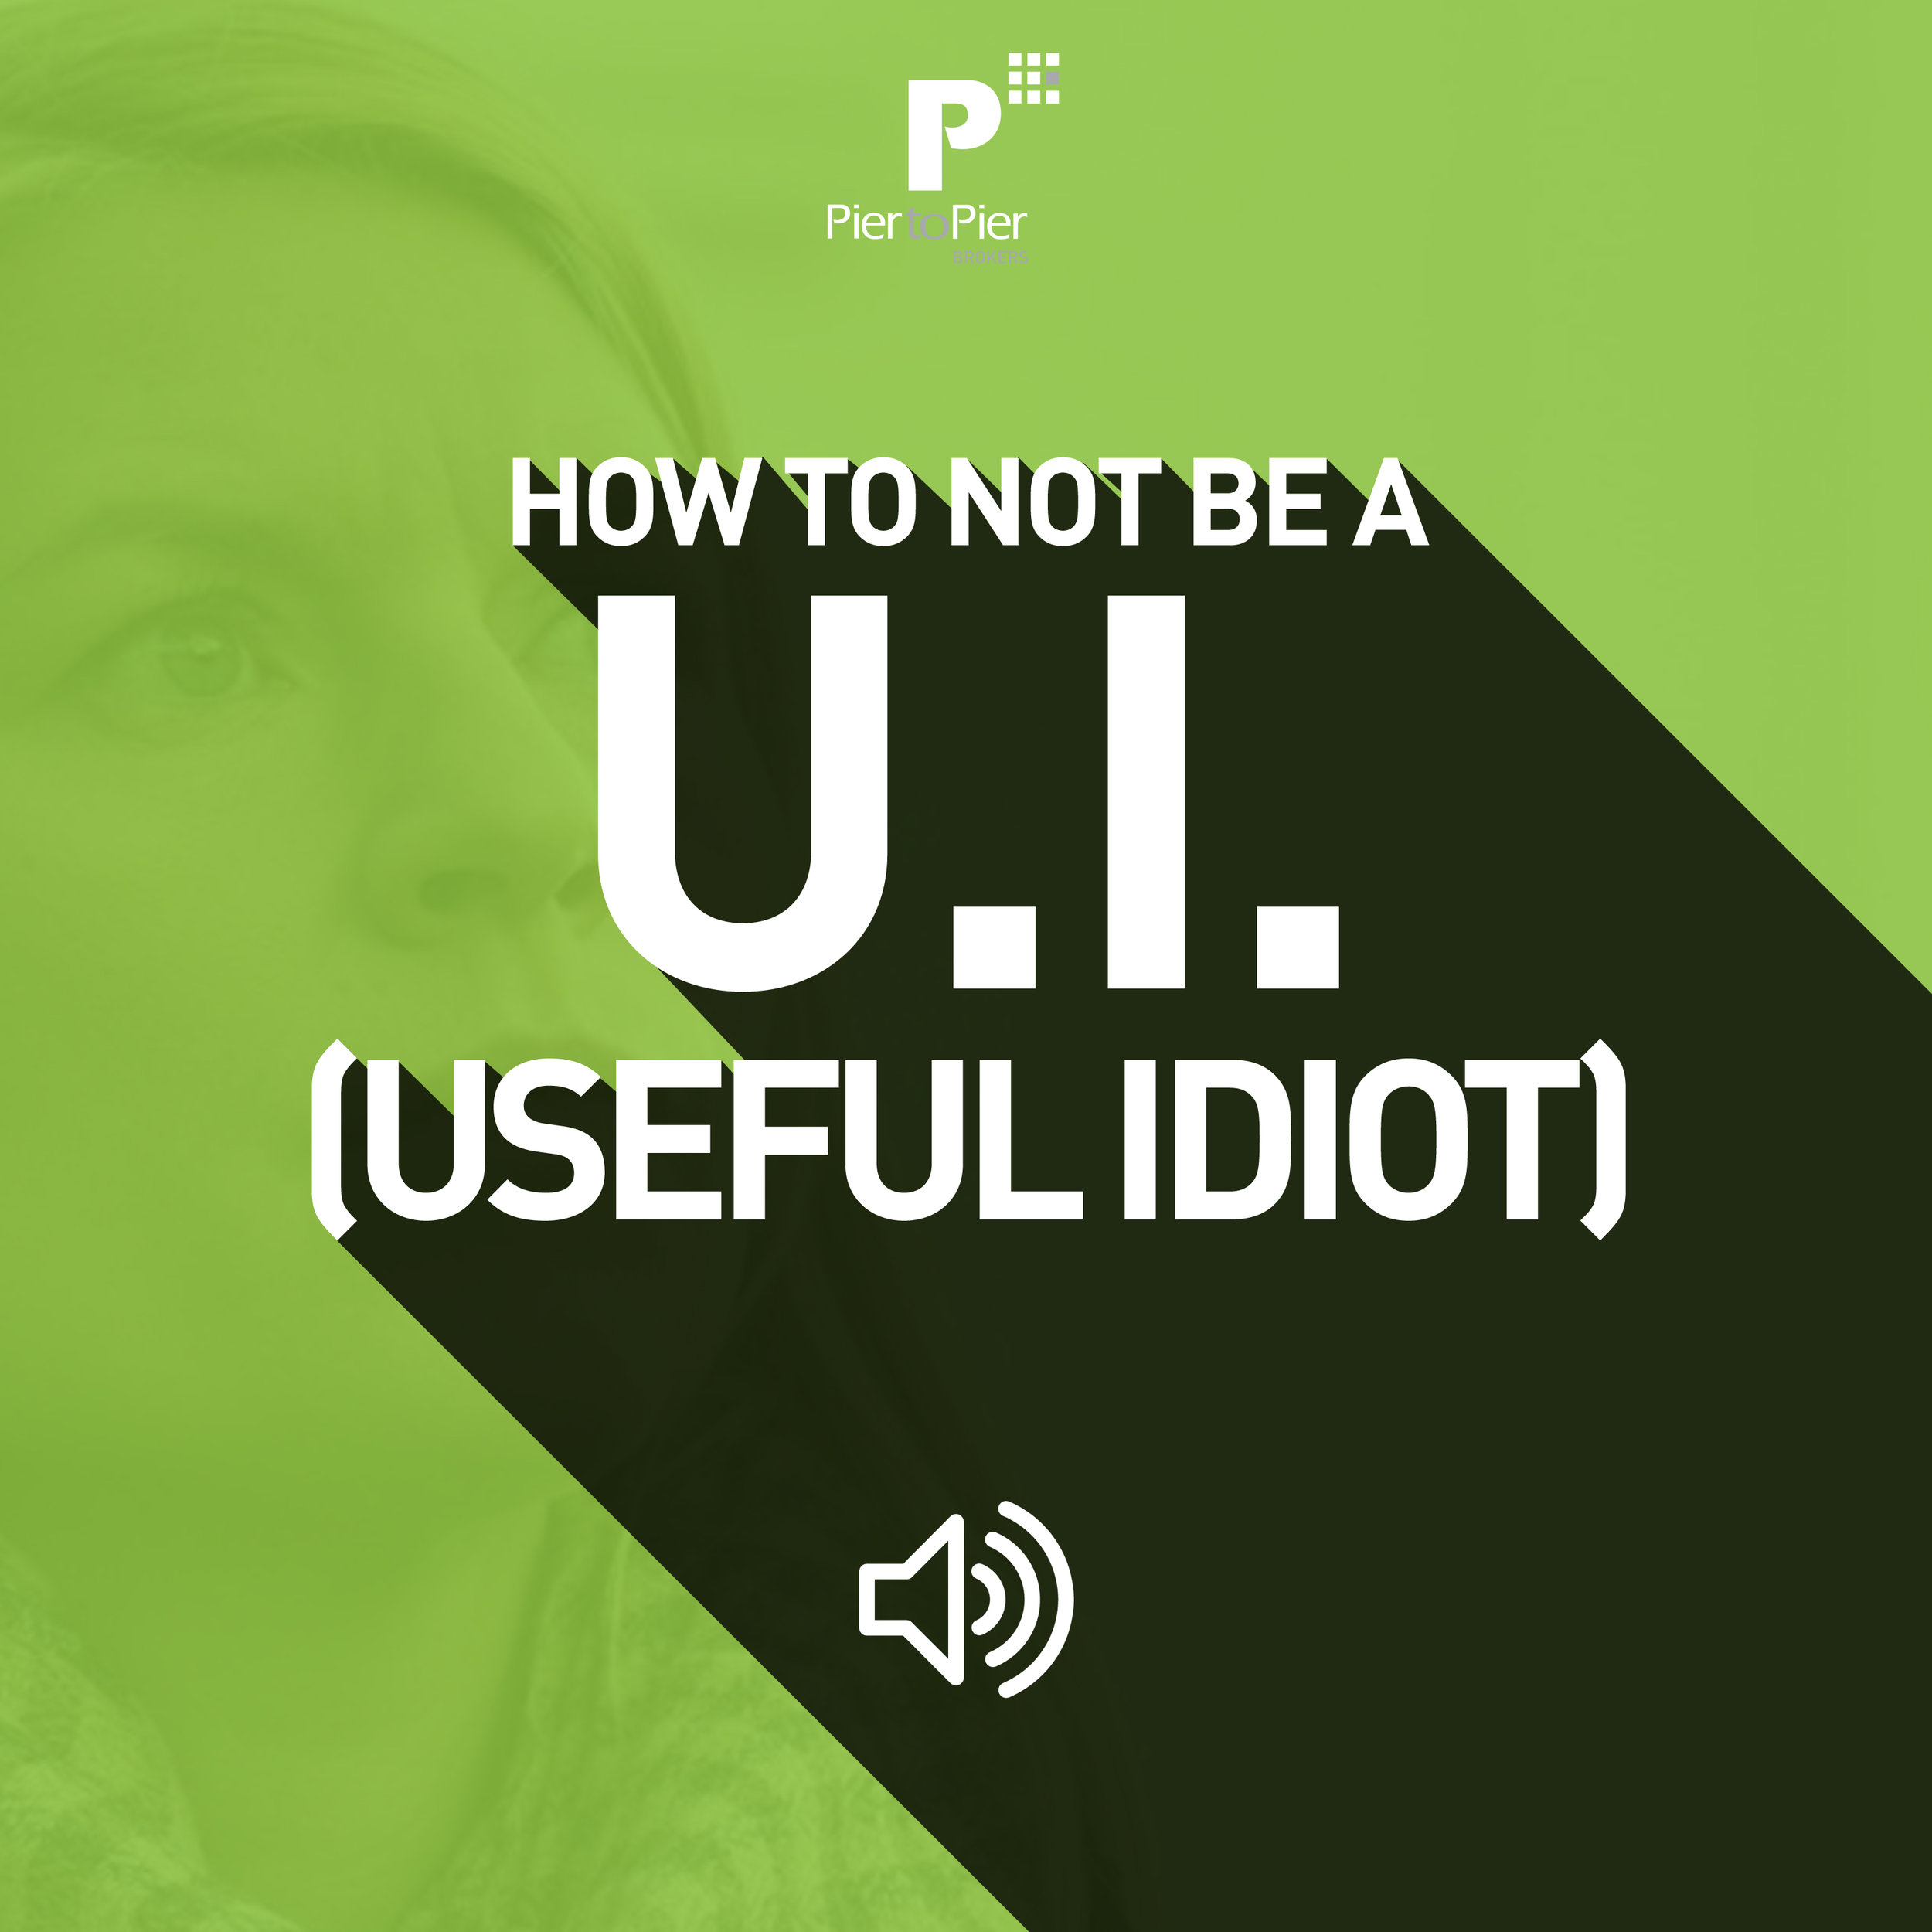 Ep 23: How To Not Be a U.I. (Useful Idiot)